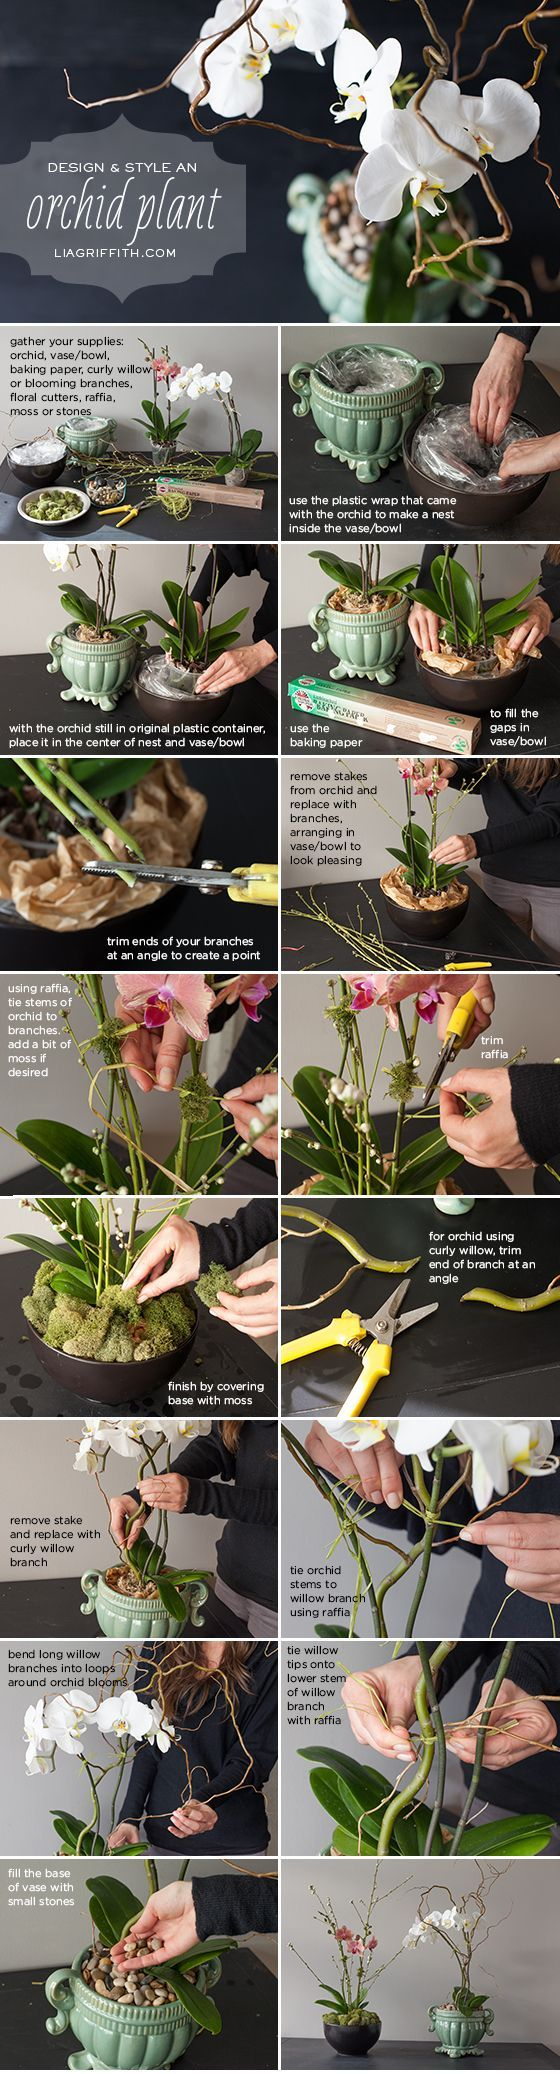 Use this easy step-by-step tutorial to style a grocery store orchid into a floral shop design.: